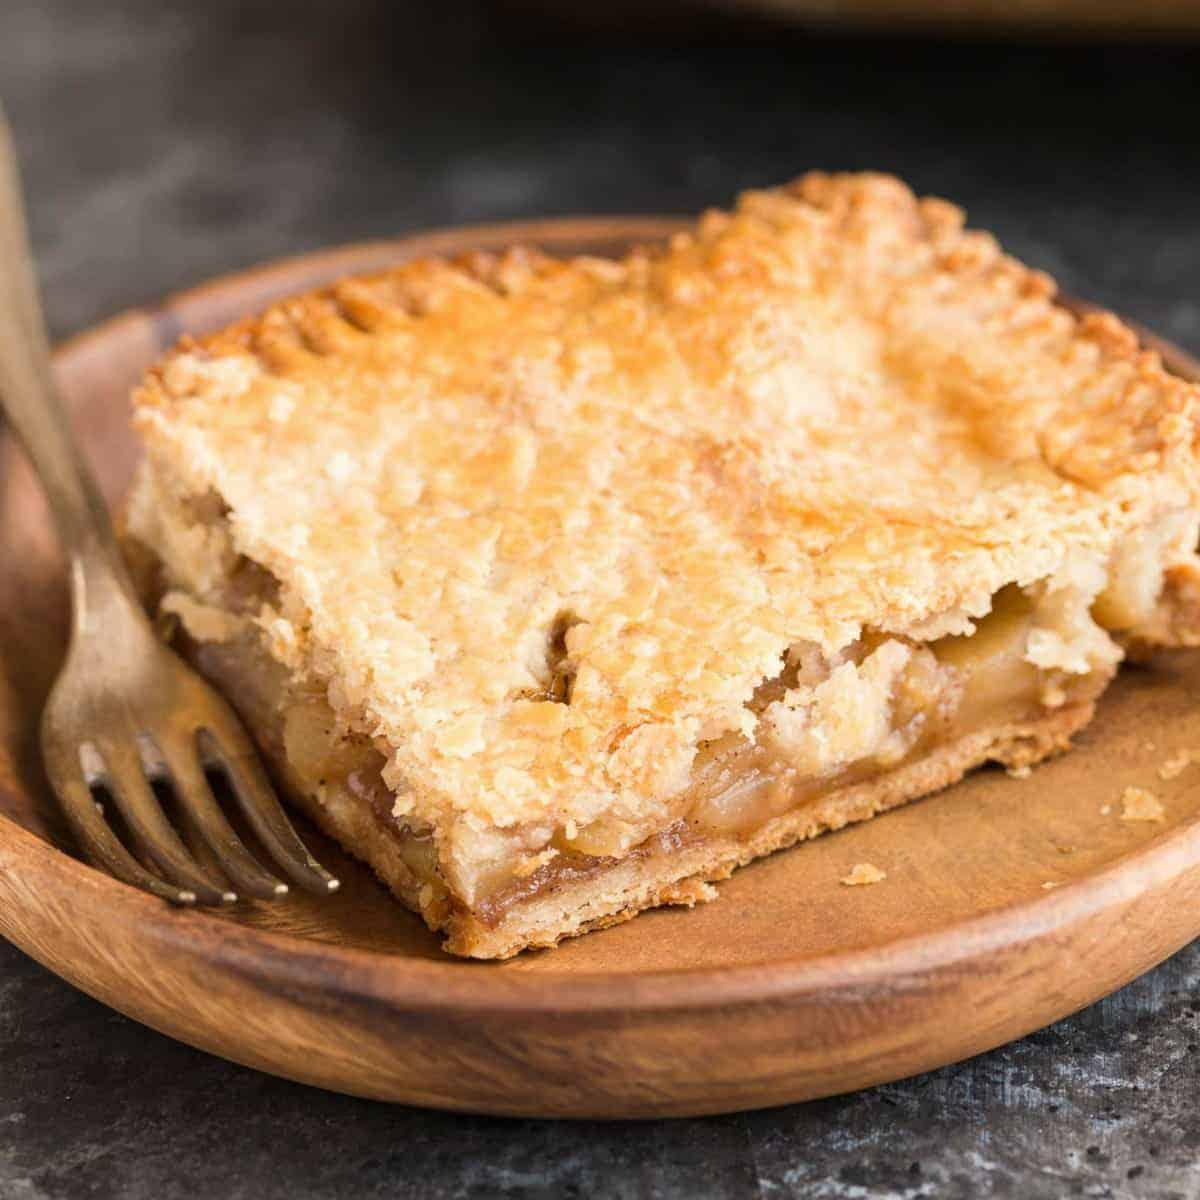 A square slice of apple slab pie on a wooden plate with a fork next to it.